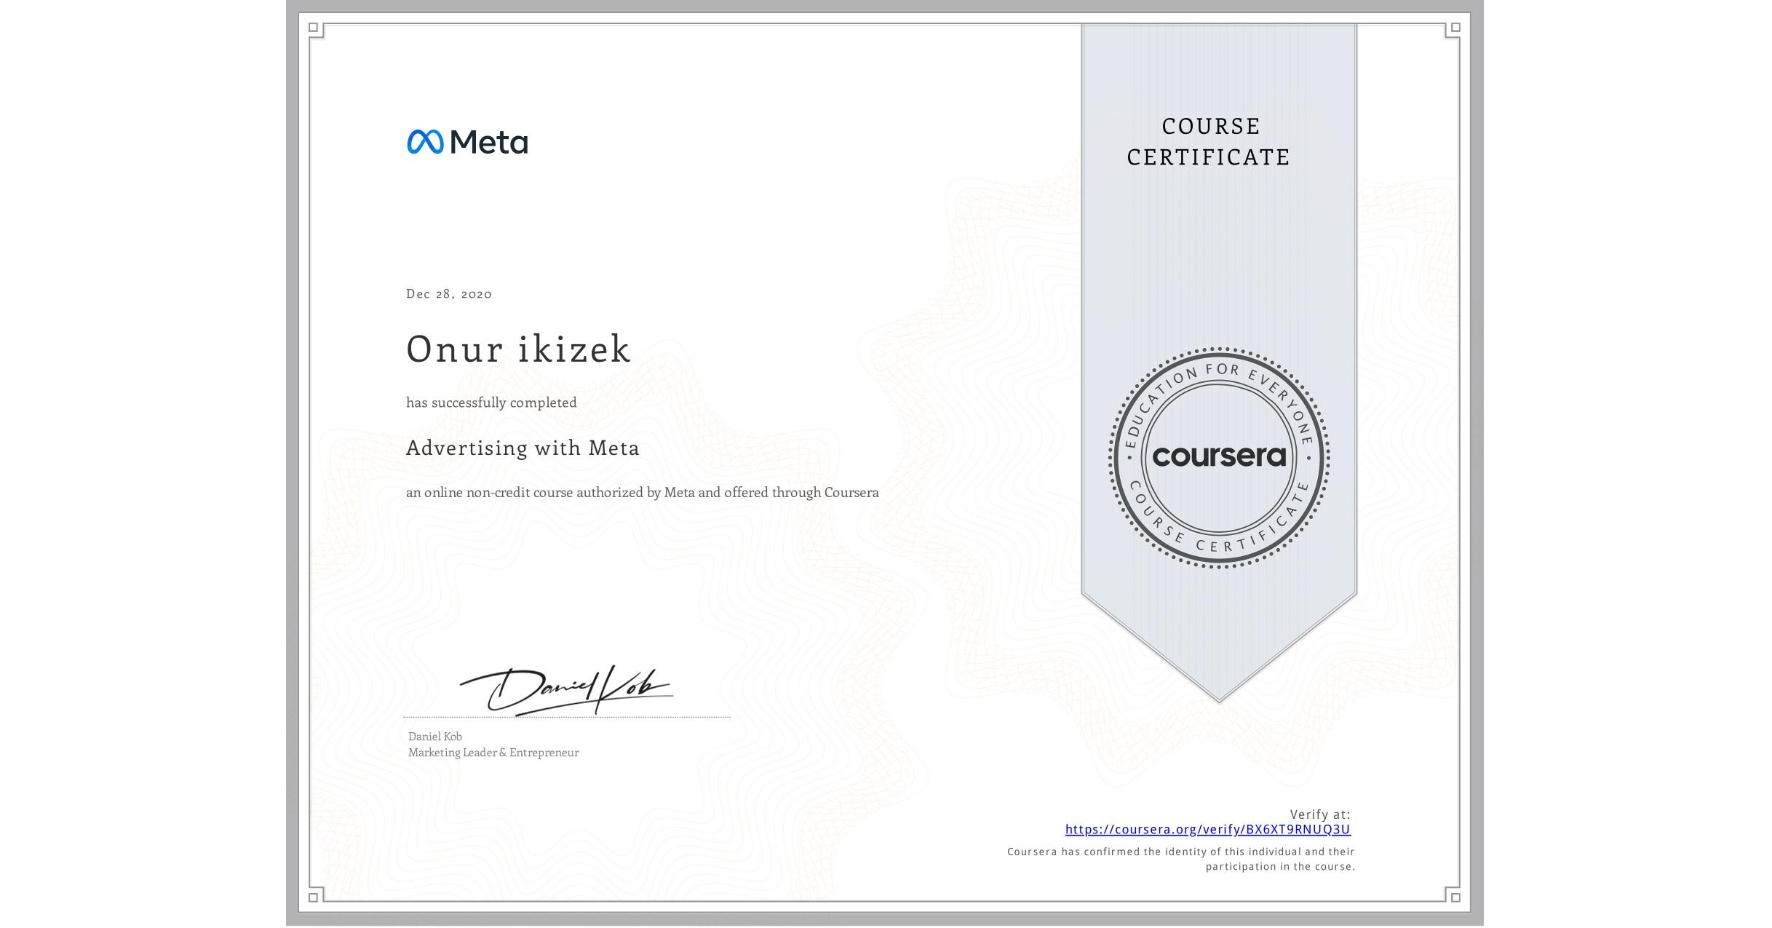 View certificate for Onur ikizek, Advertising with Facebook, an online non-credit course authorized by Facebook and offered through Coursera